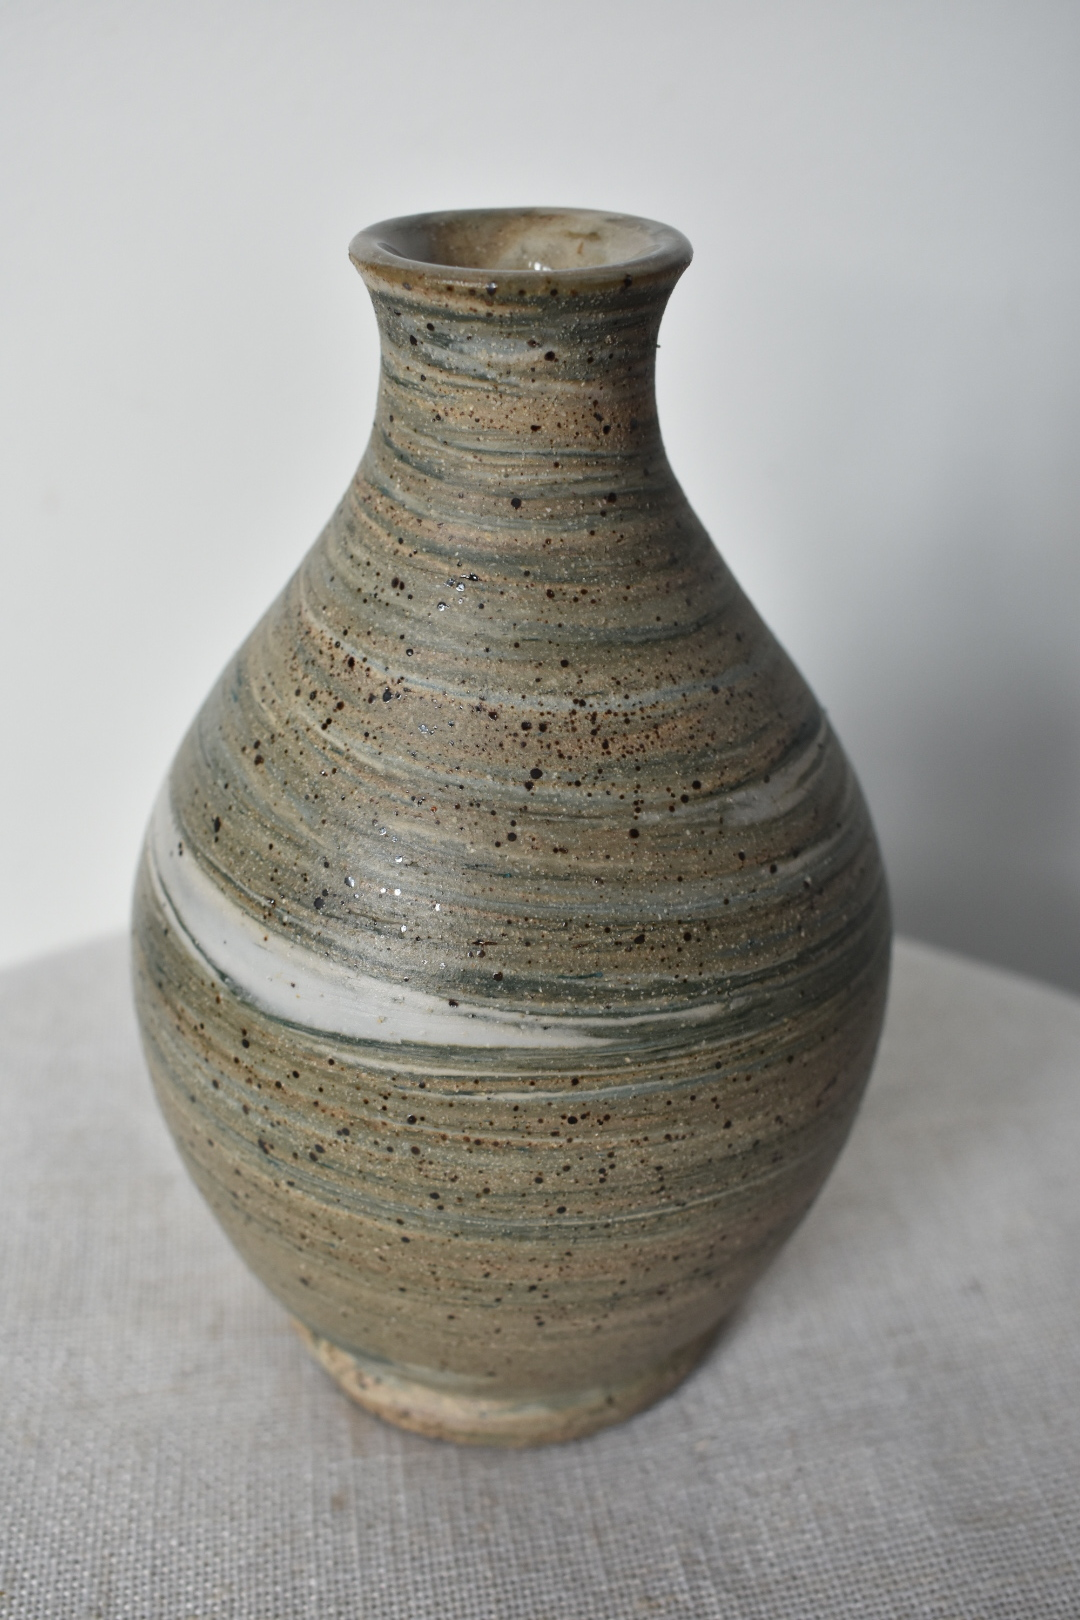 LVLVT Pottery - Nature-inspired, functional ceramic pieces